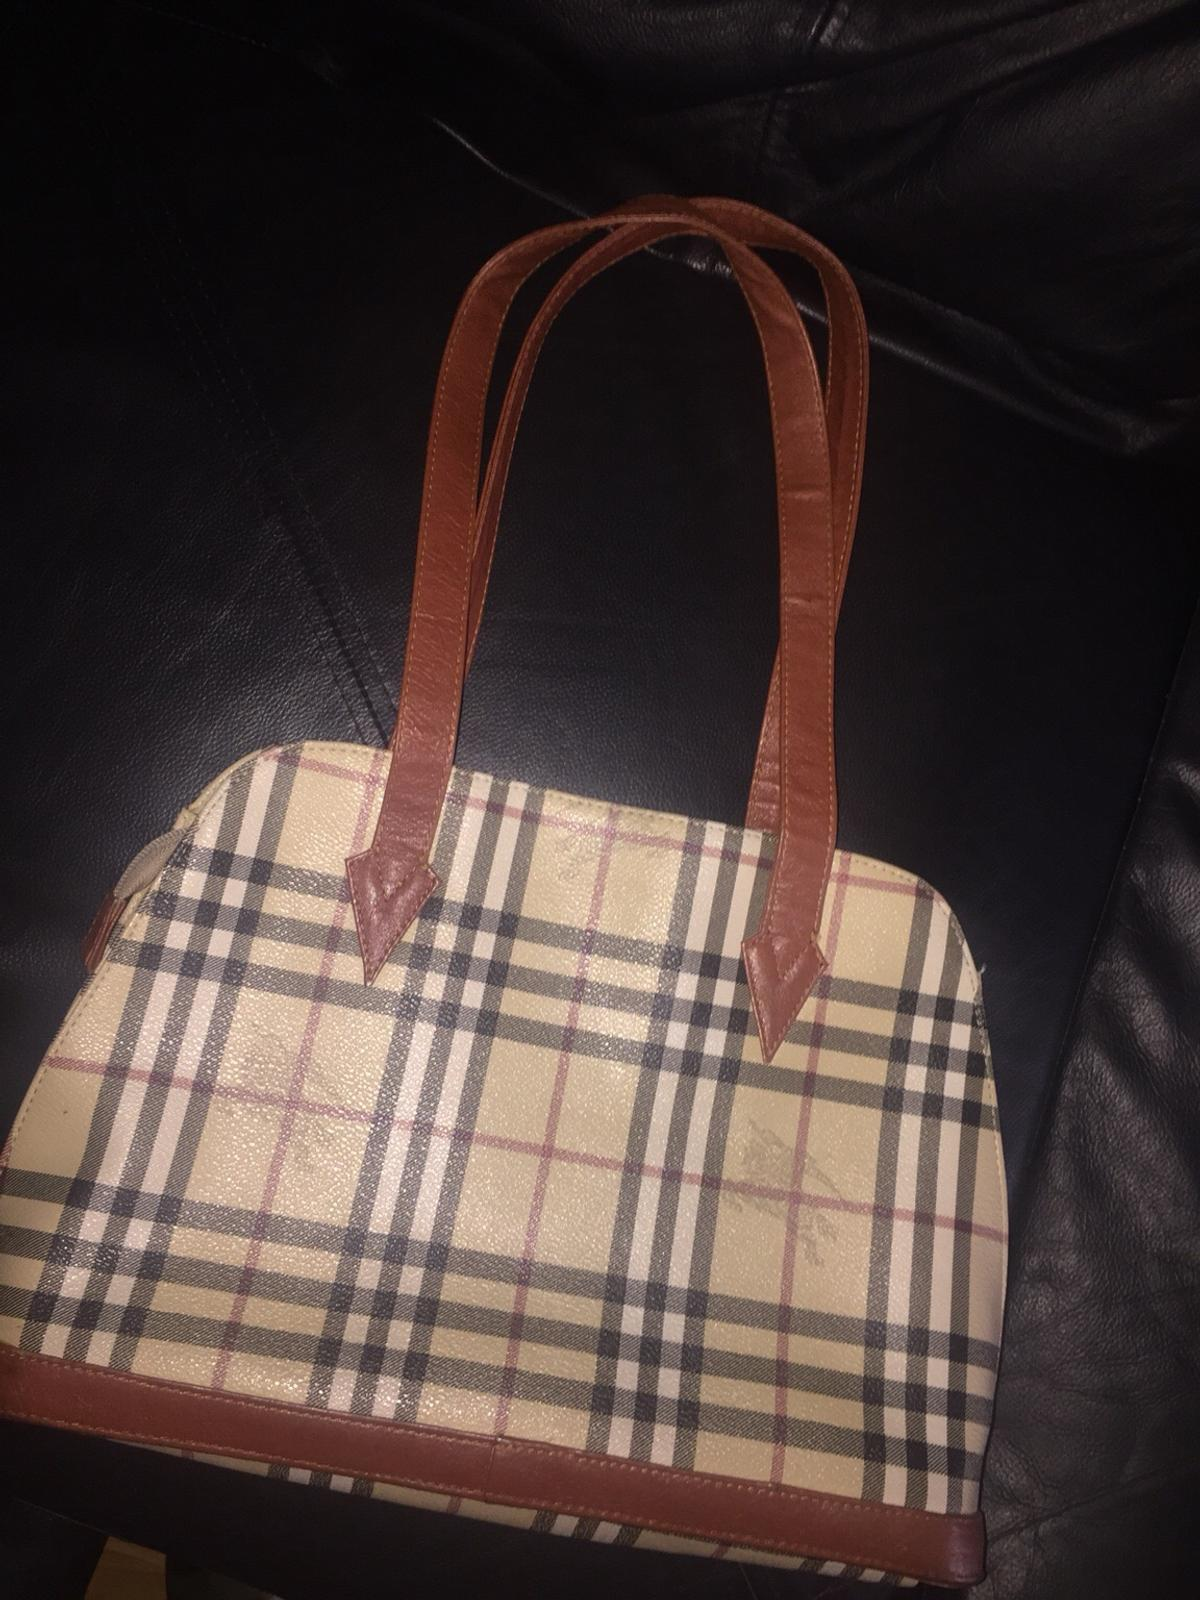 Authentic Burberry Handbag In E17